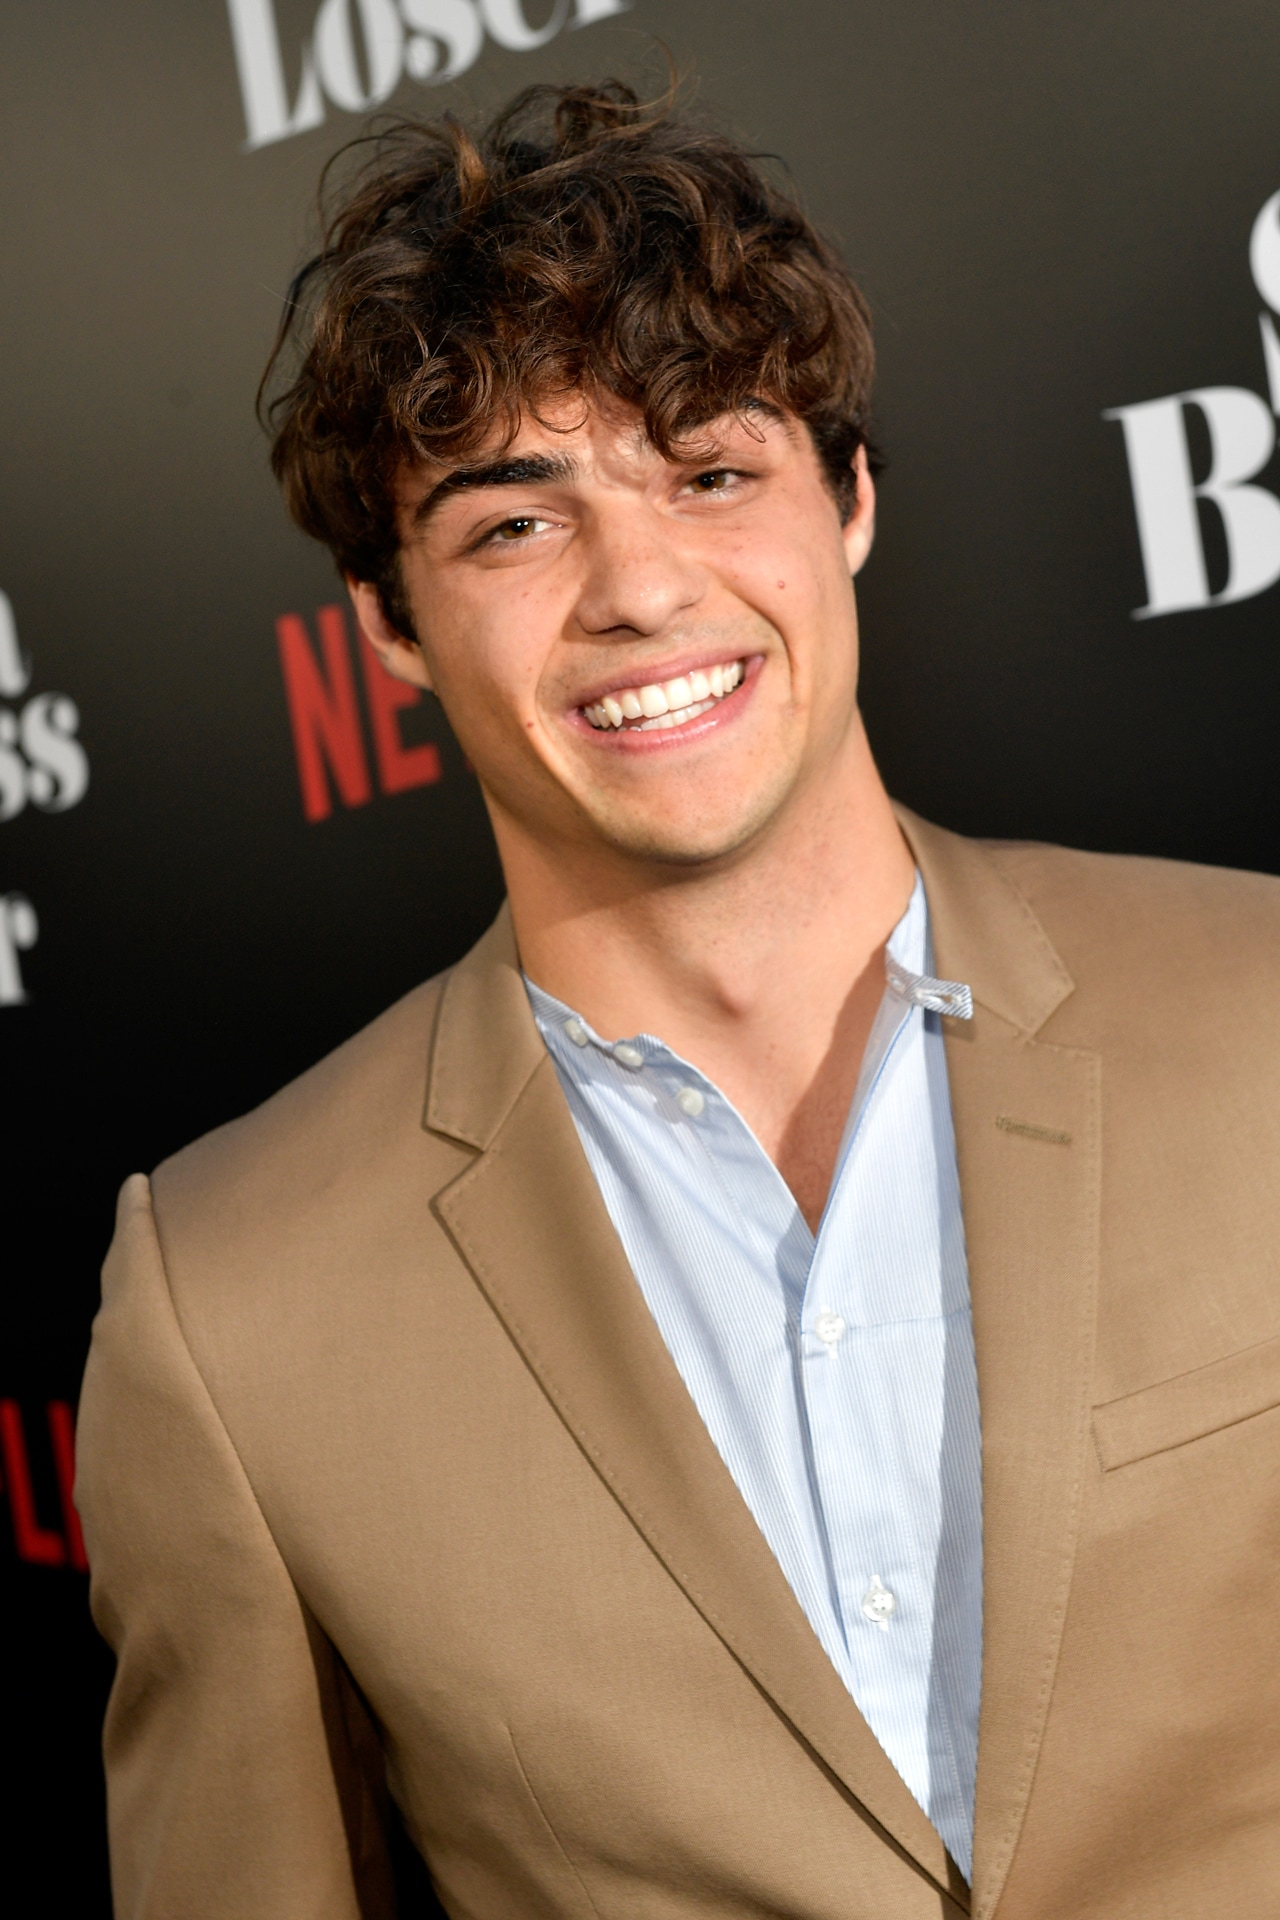 Every knee-weakening thing Noah Centineo has said about love